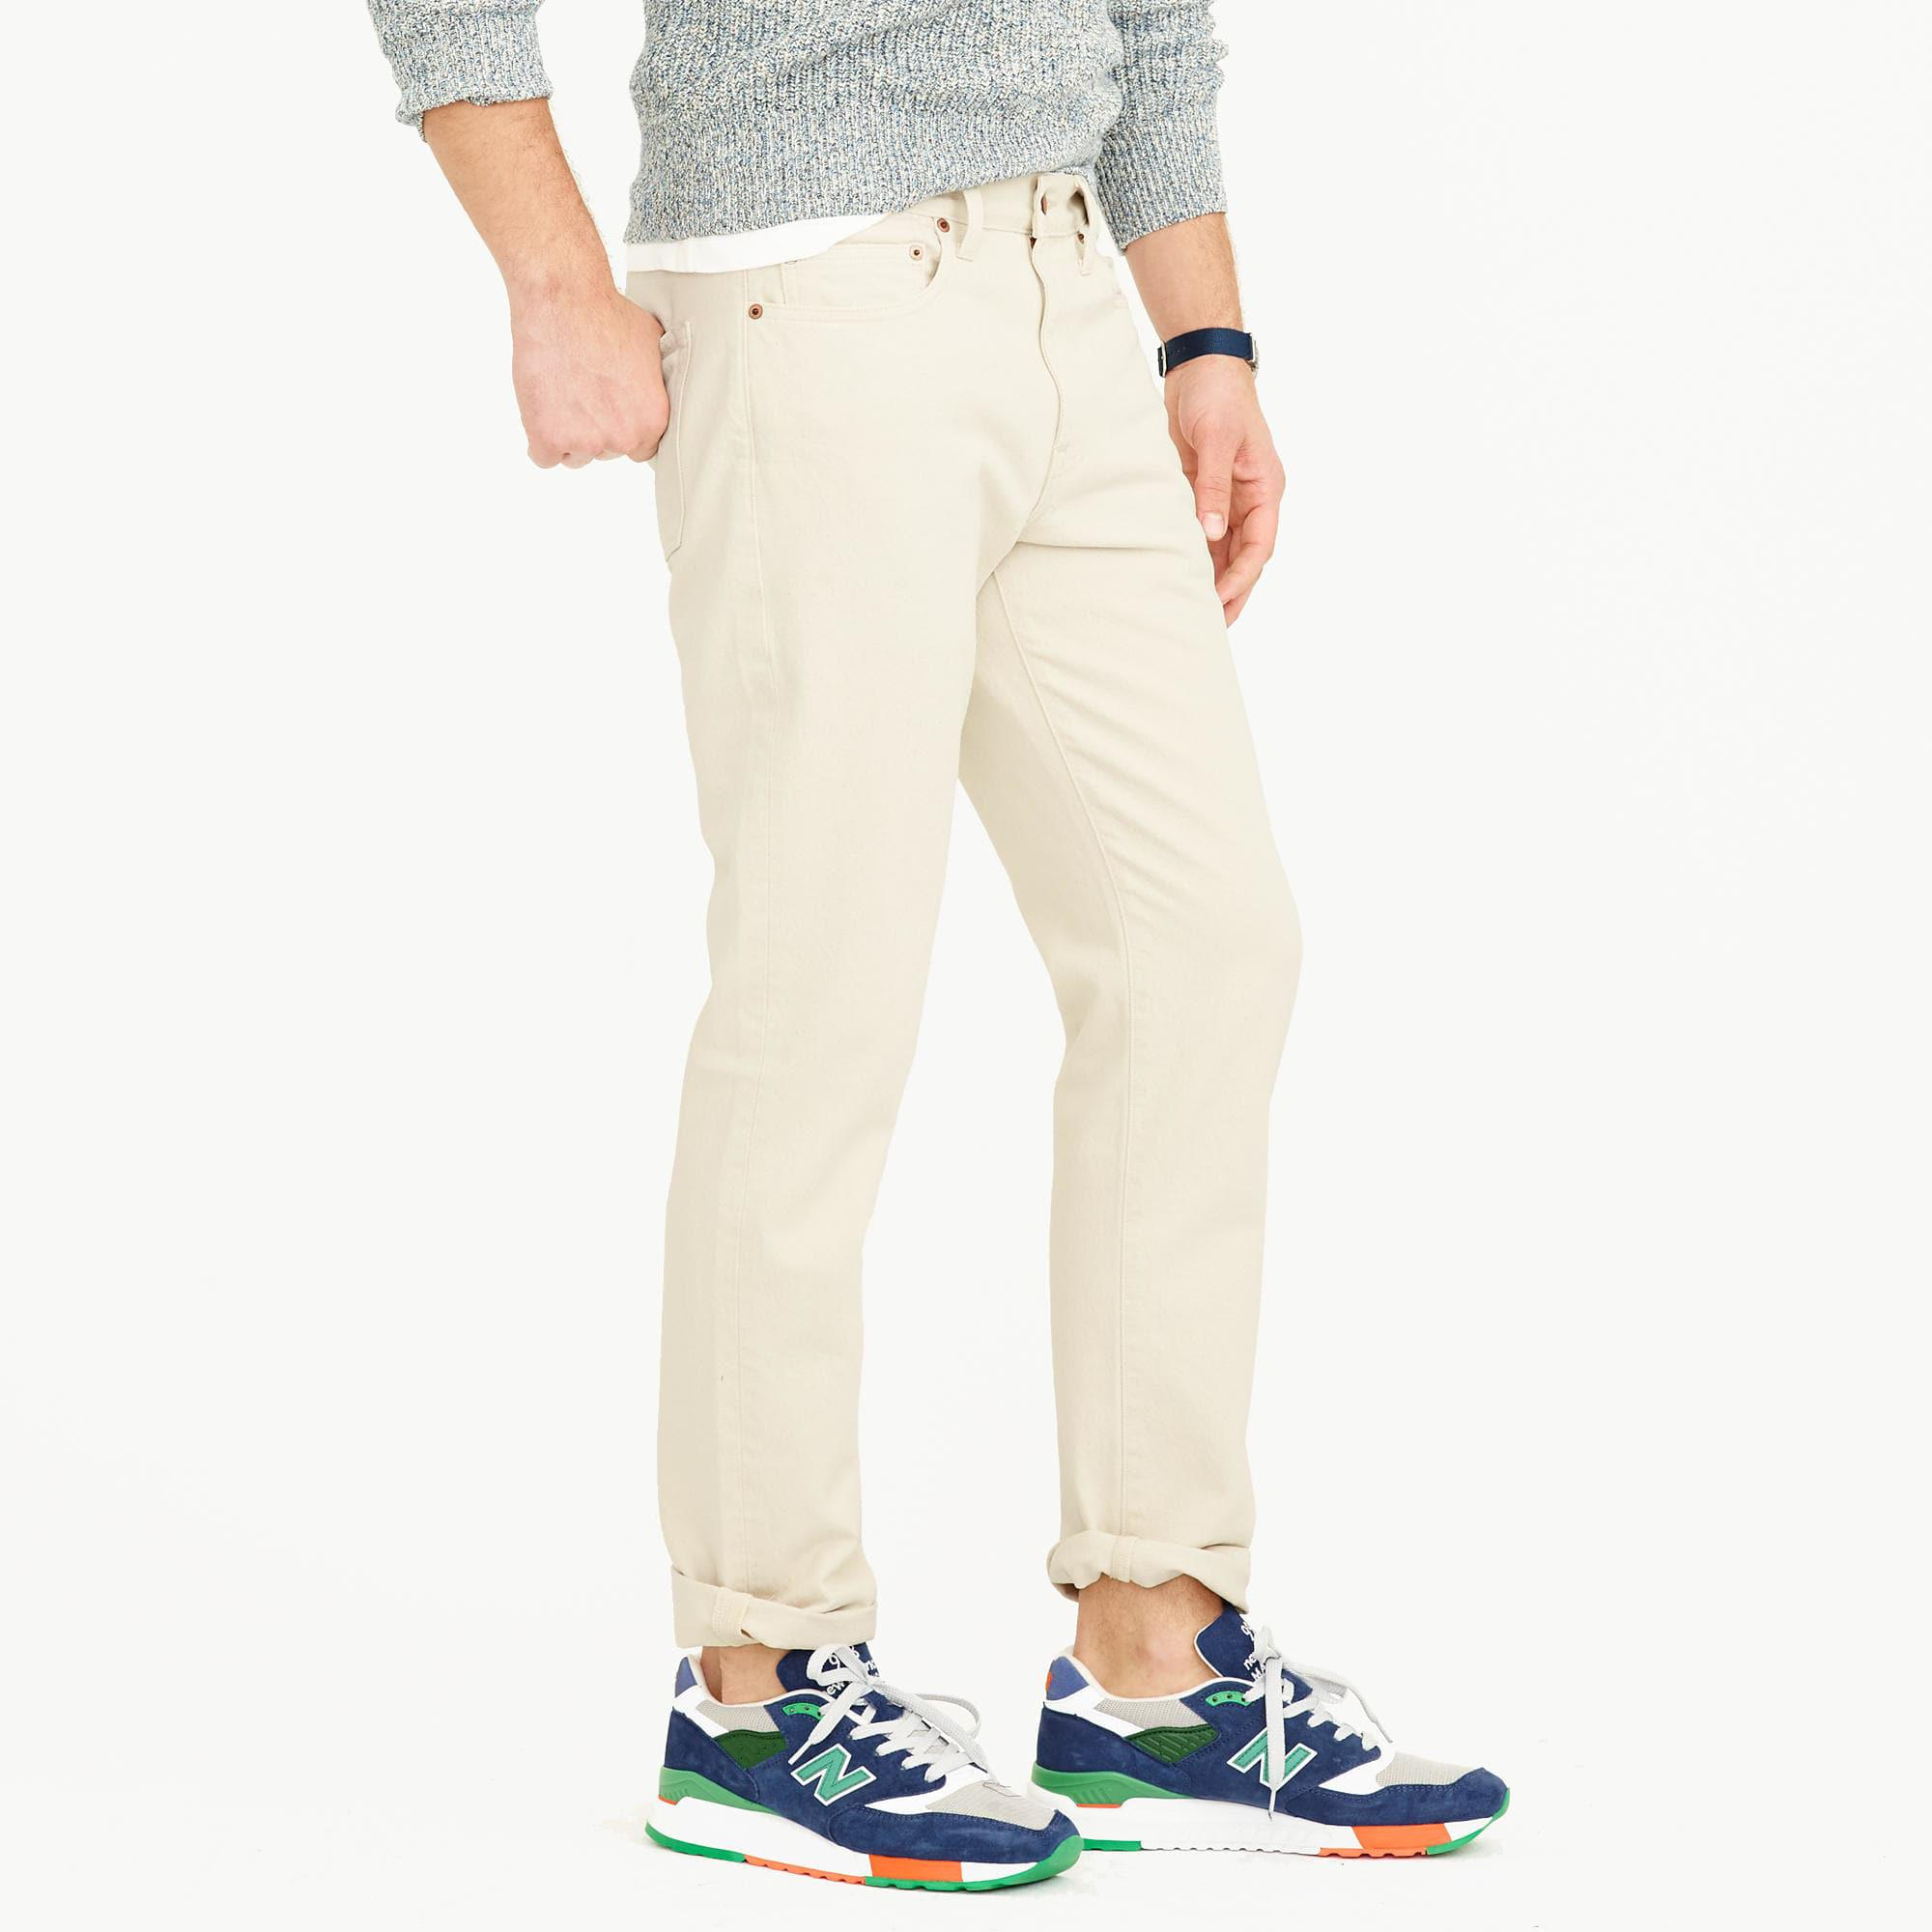 J.Crew Denim 770 Straight Seeded Jean In Wheat in Natural for Men